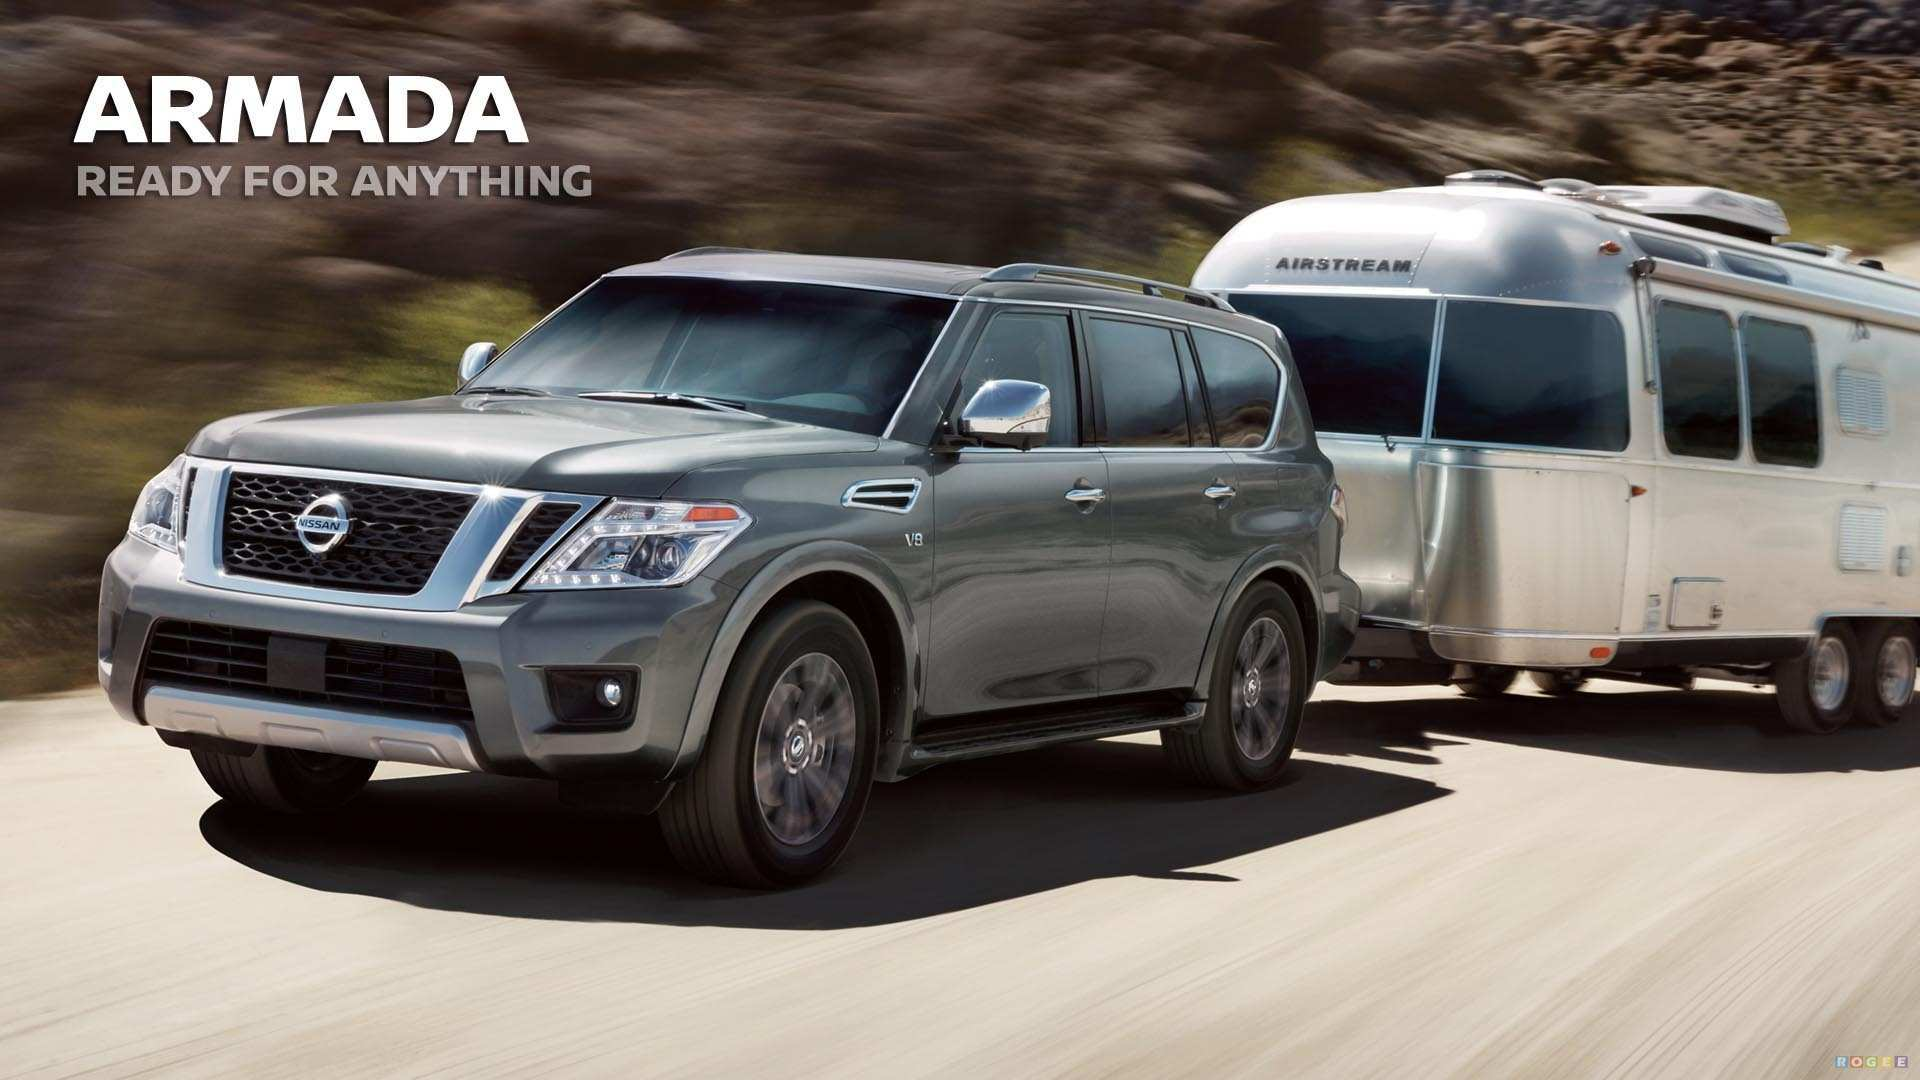 51 Gallery of Nissan Armada 2020 Price Wallpaper with Nissan Armada 2020 Price